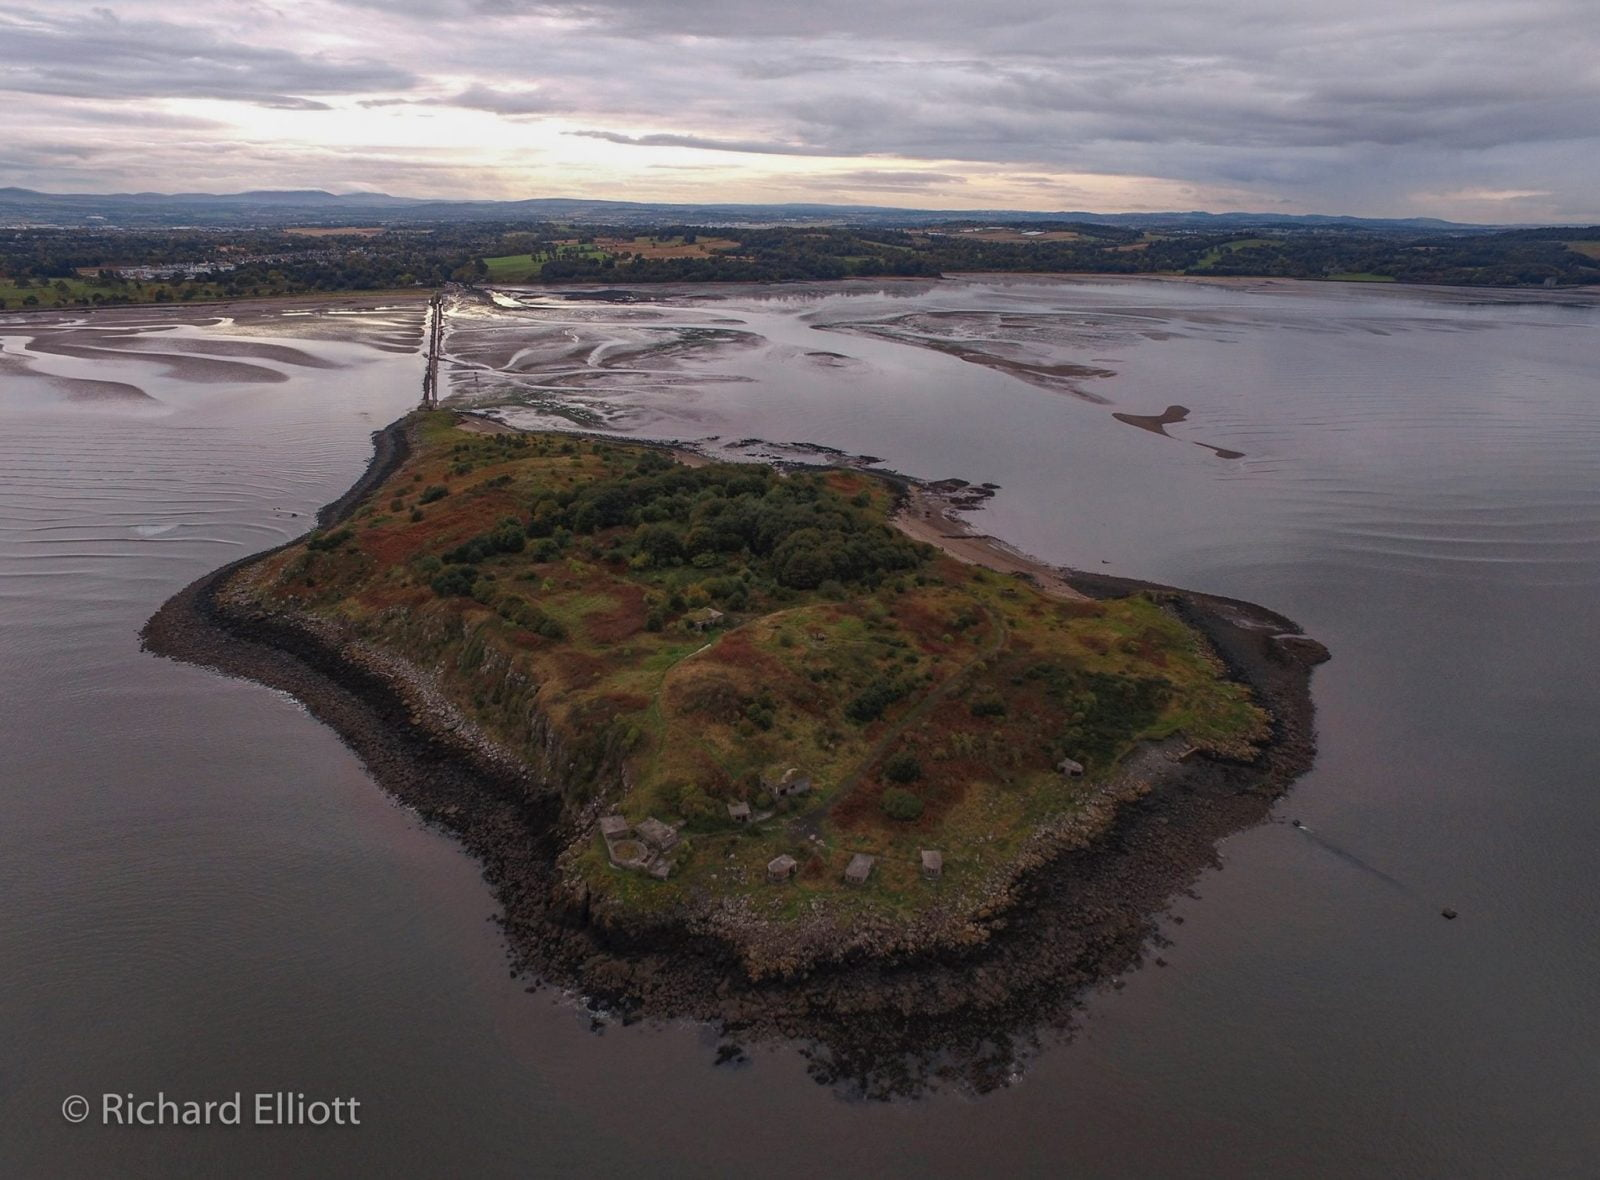 cramond island edinburgh scotland